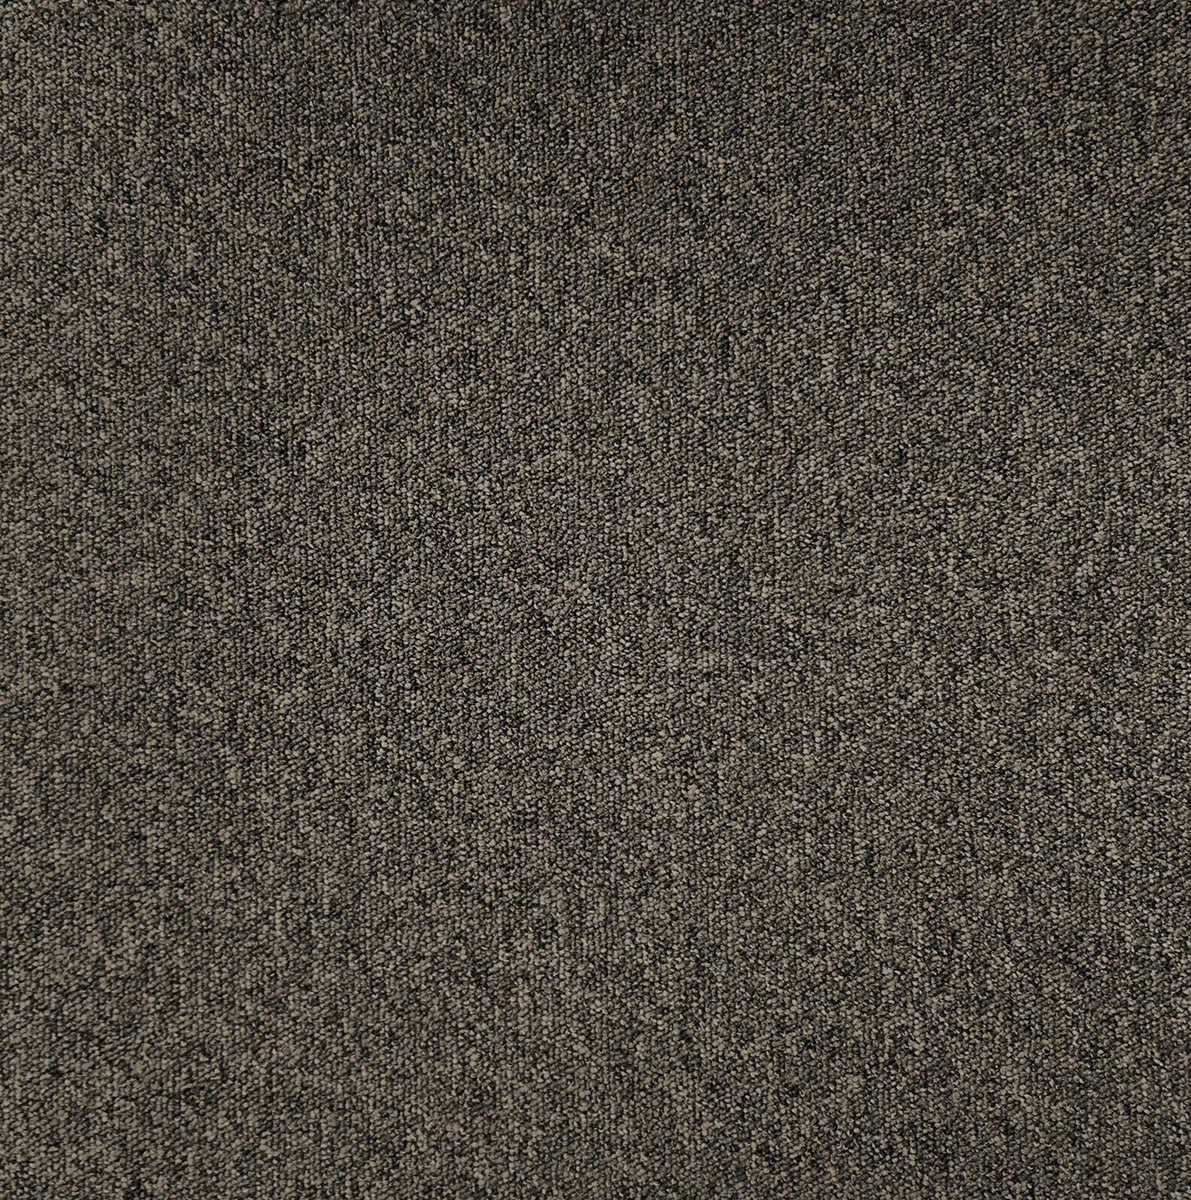 Looking for Interface carpet tiles? Heuga 727 PD in the color DimGrey is an excellent choice. View this and other carpet tiles in our webshop.